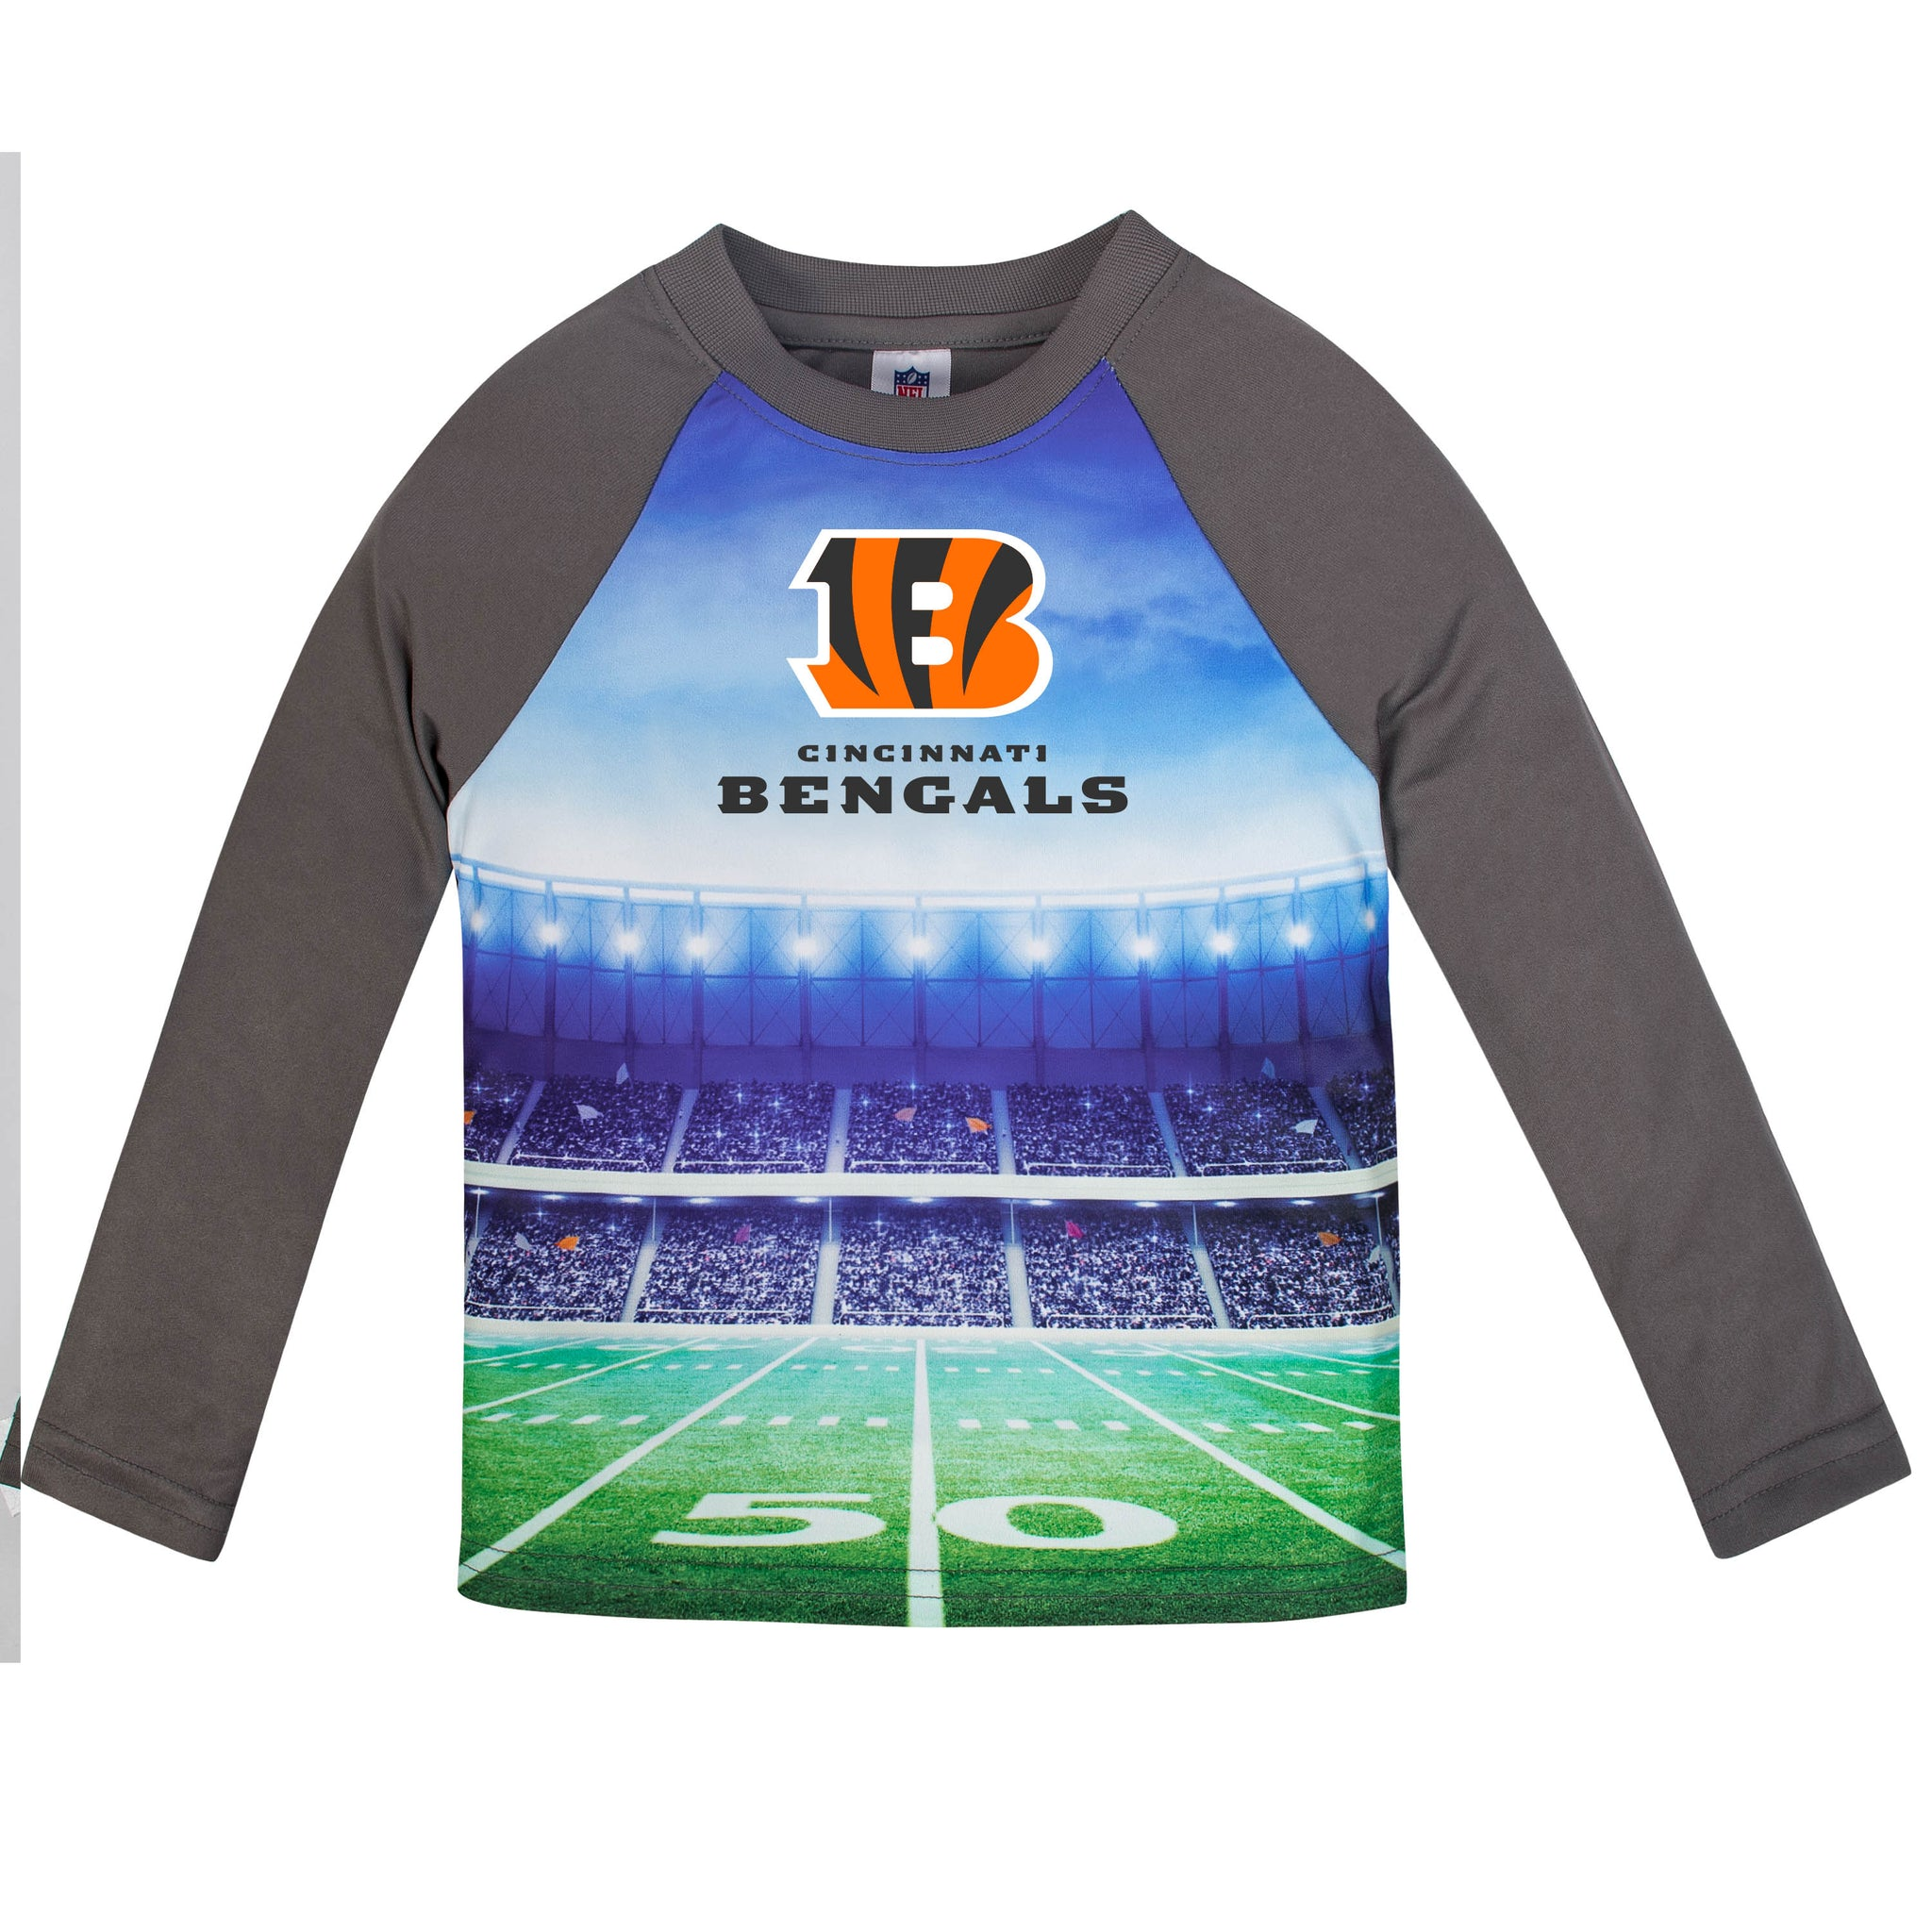 Cincinnati Bengals Boys Long Sleeve Tee Shirt-Gerber Childrenswear